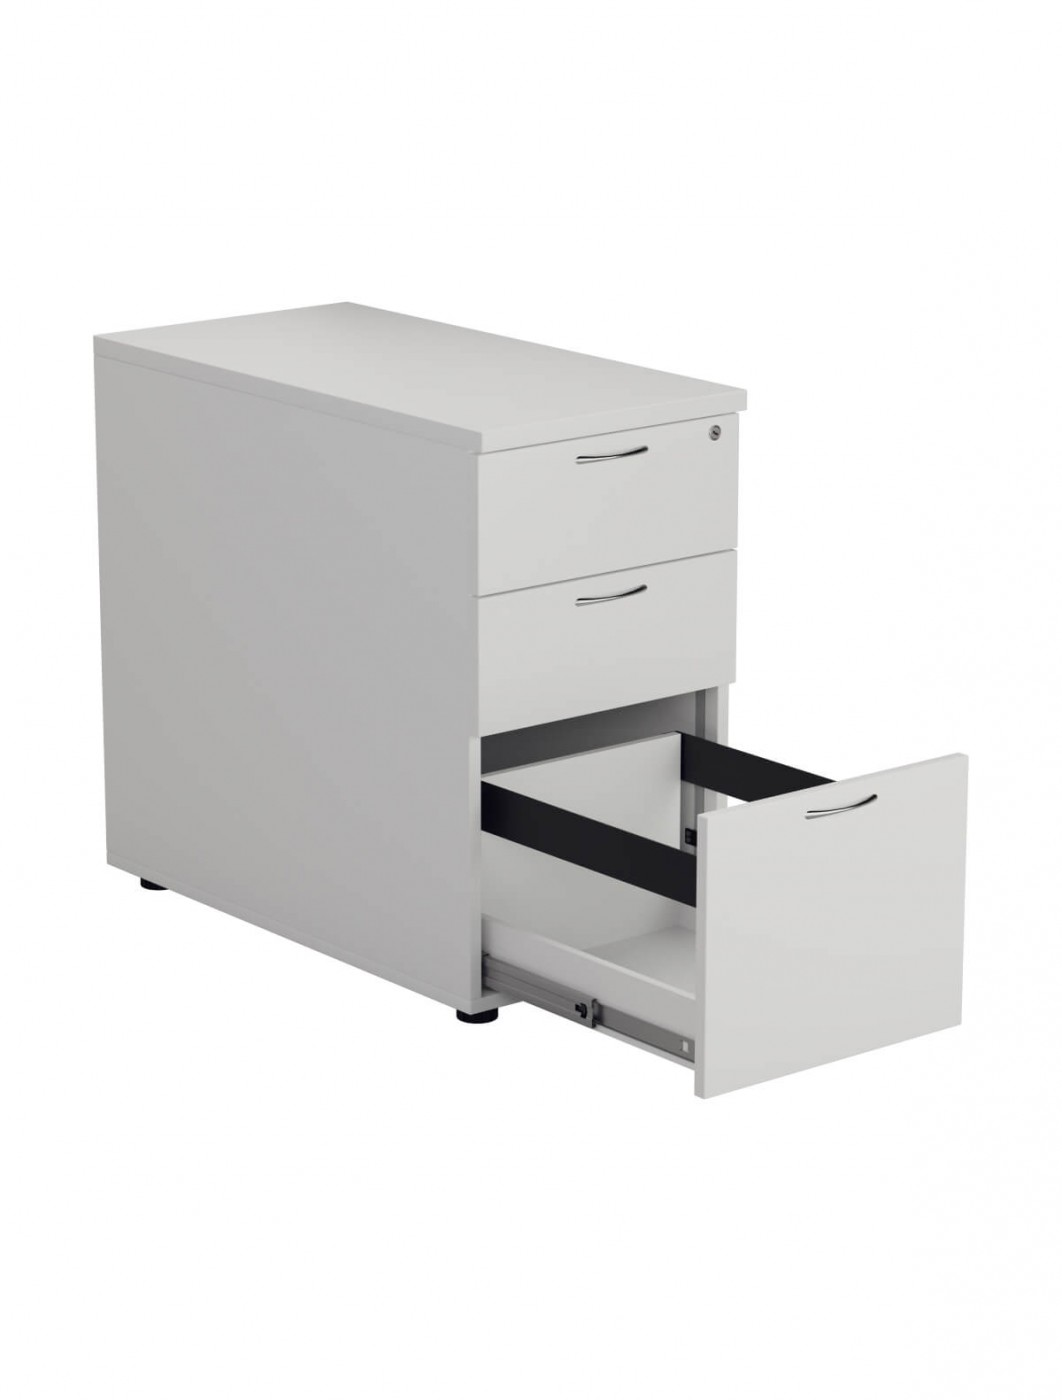 Office Furniture - Desk High Pedestal TESDHP3/800 Office Storage